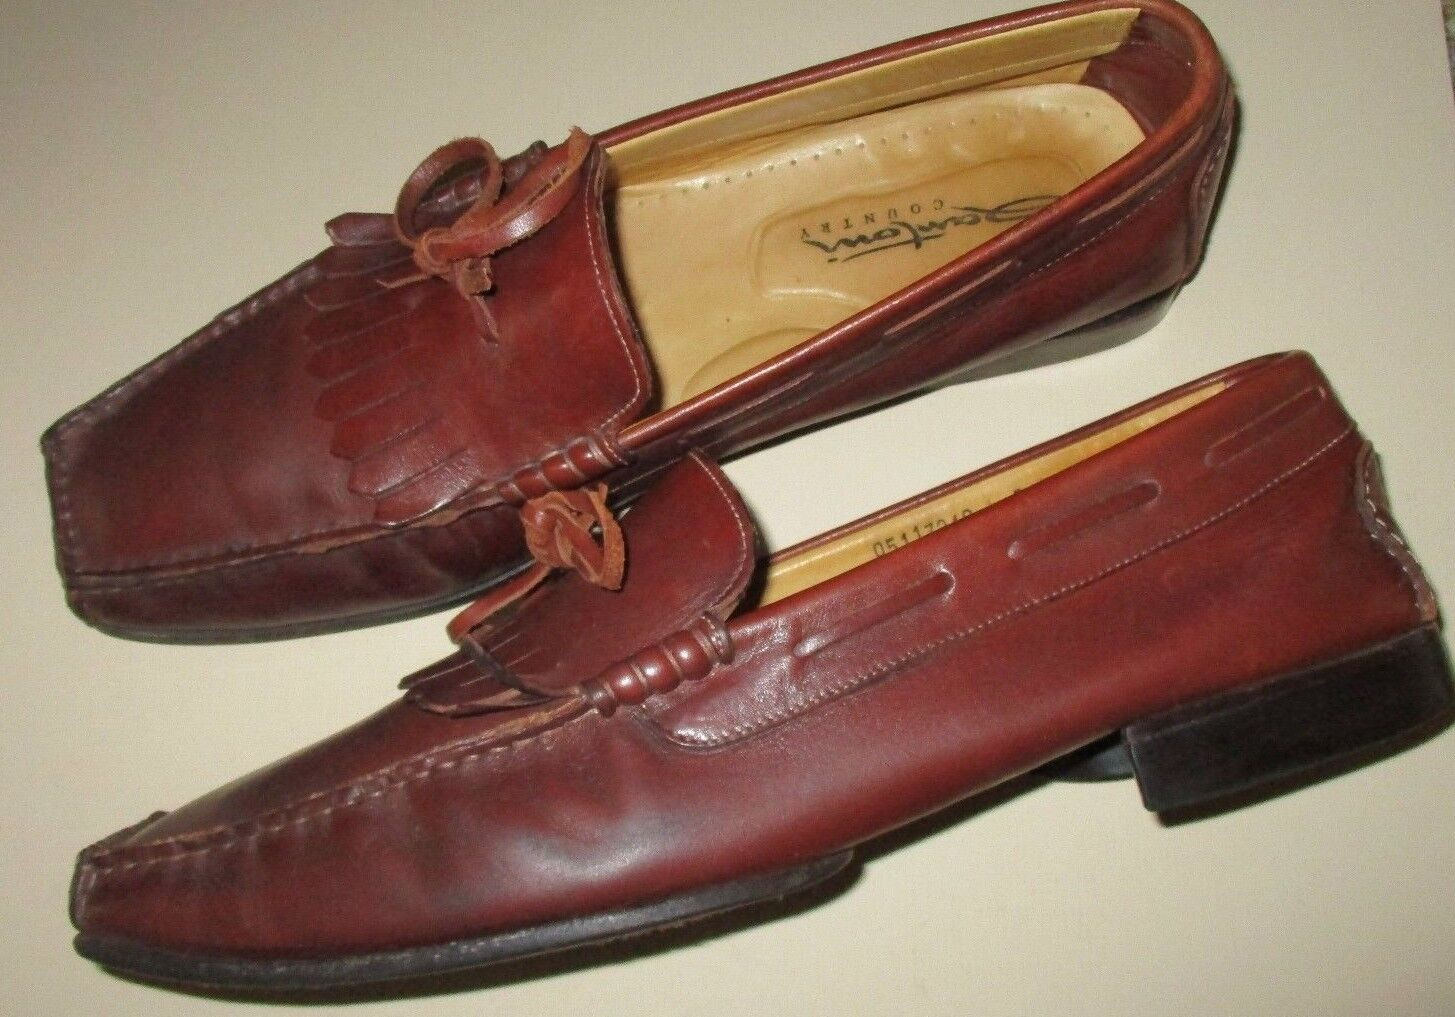 Santoni Country Loafers-Size 11.5 D-Italy